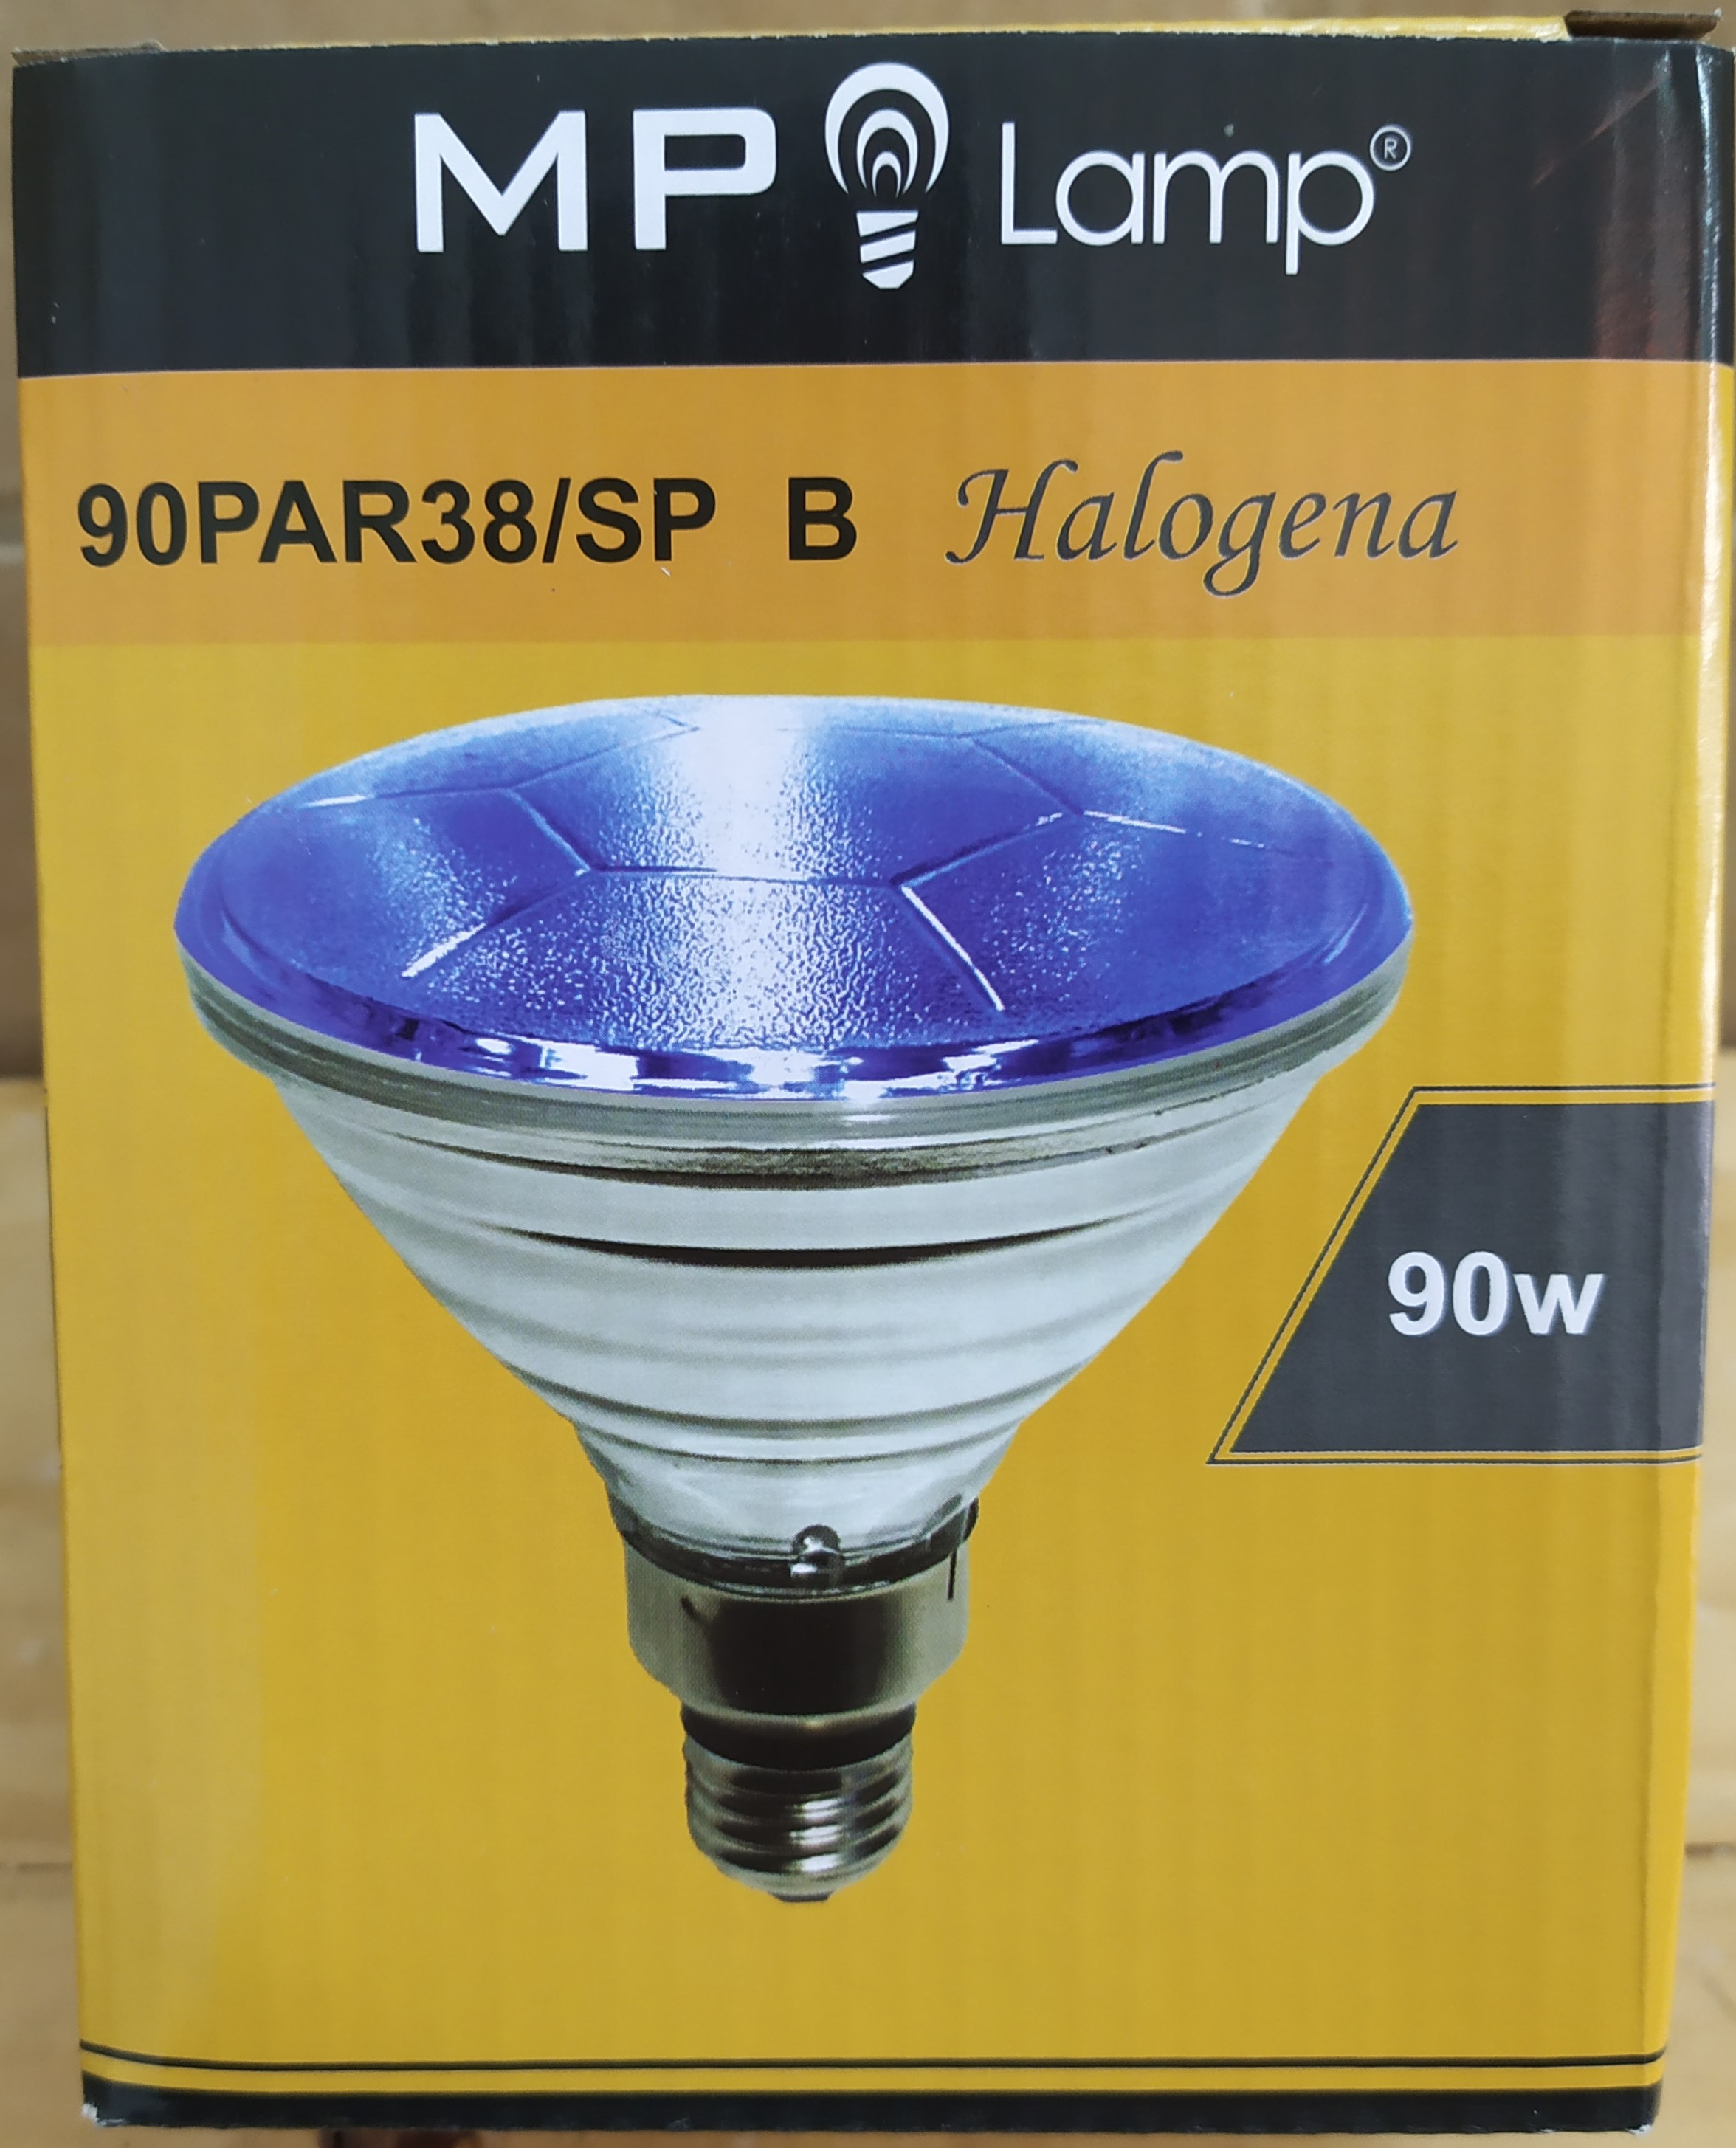 E16 LAMPARA HALOGENA 90PAR38/SP AZUL 90W R/E27 MP